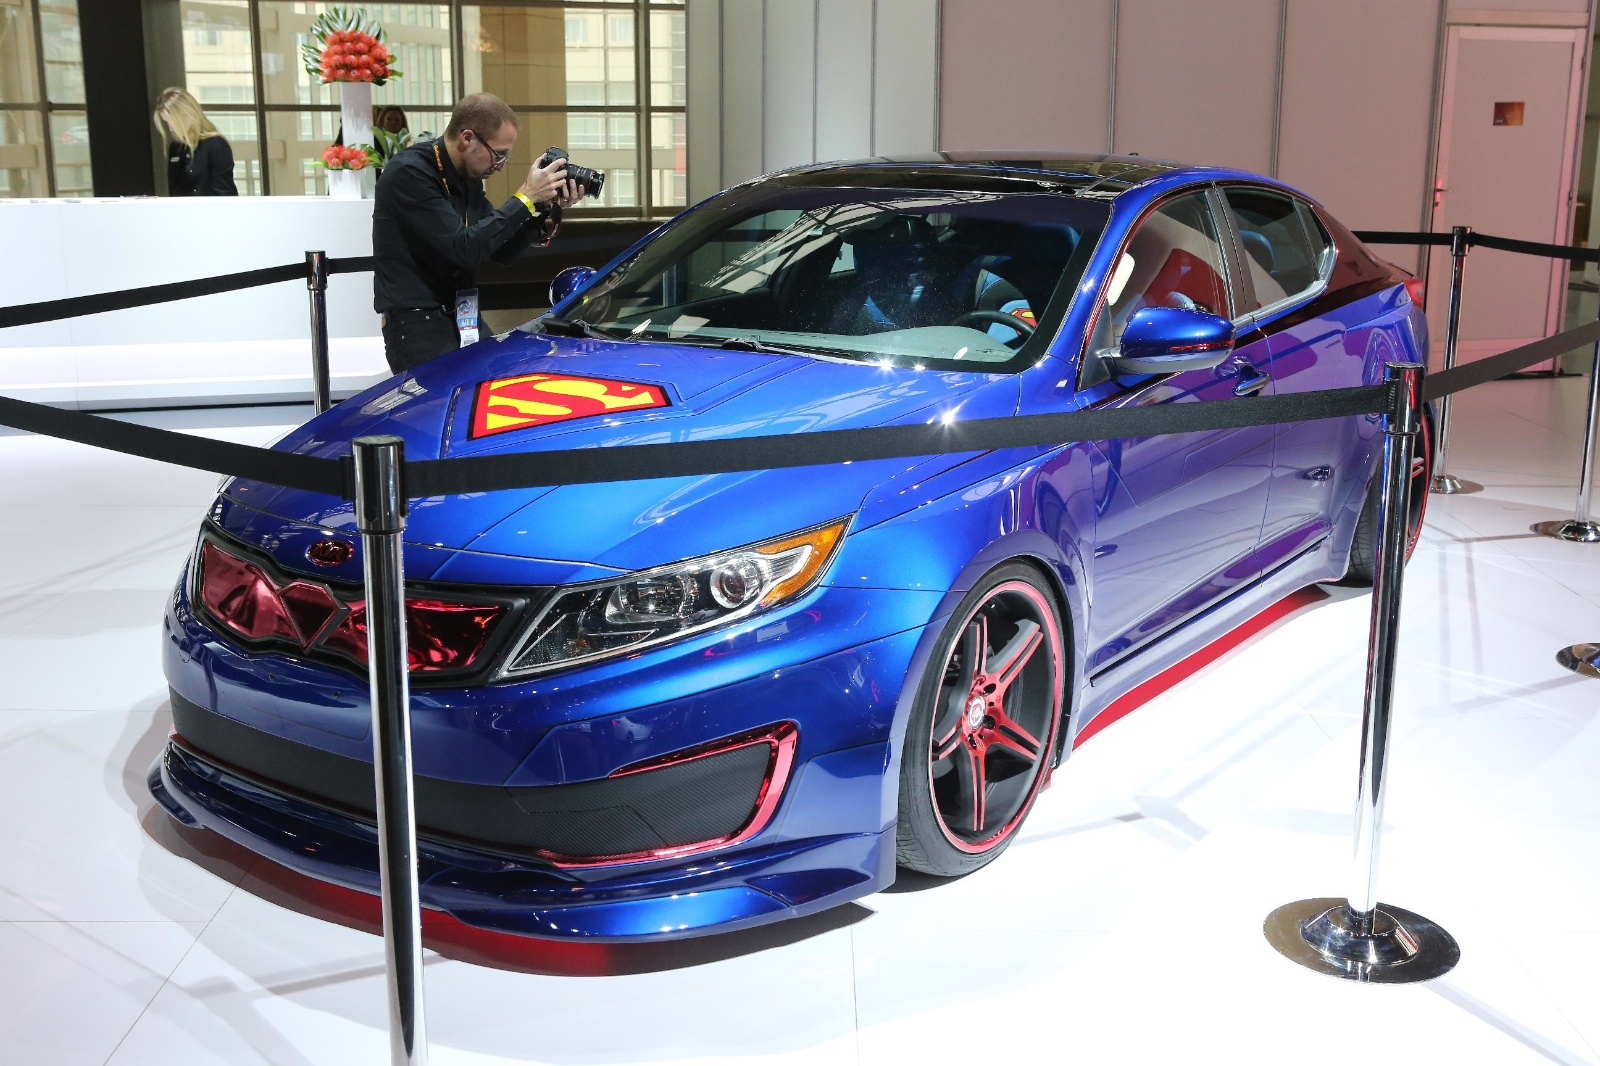 2013 chicago superman kia optima live photos autoevolution superman themed kia optima superman themed kia optima sciox Images